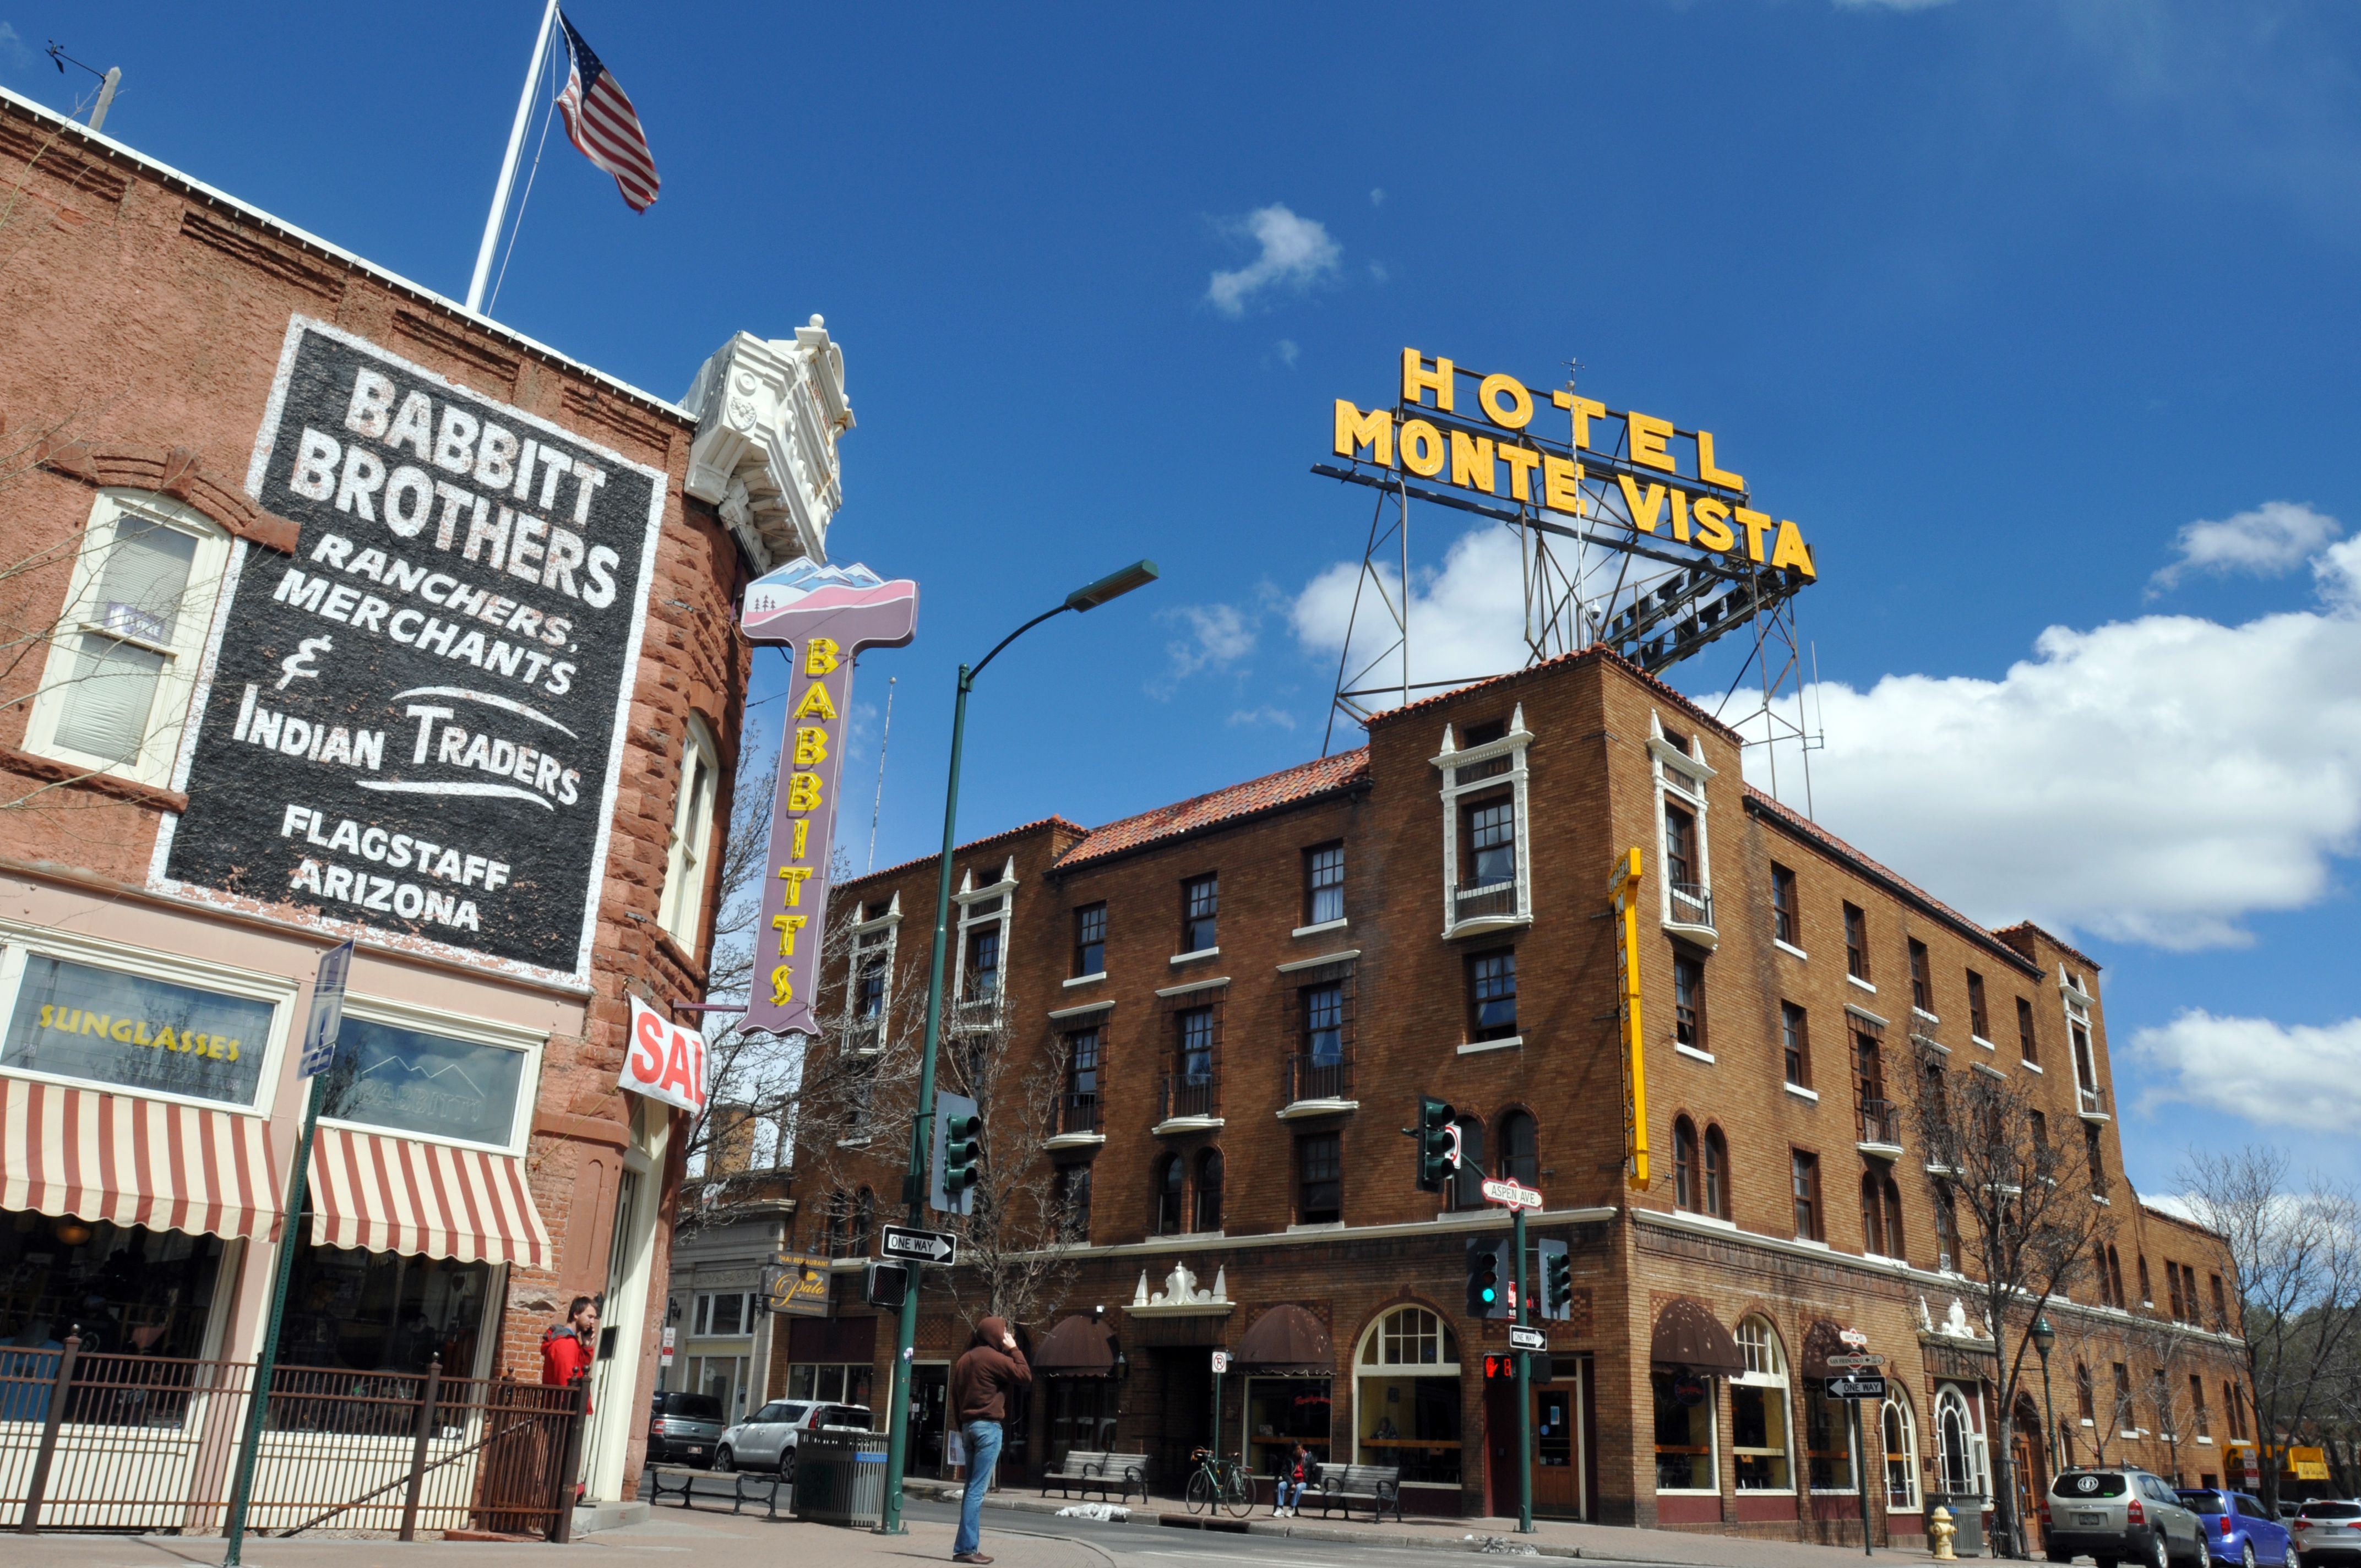 The 1927 Hotel Monte Vista and the 1888 Babbitt Brothers store are landmarks in Flagstaff, Arizona's historic downtown district.